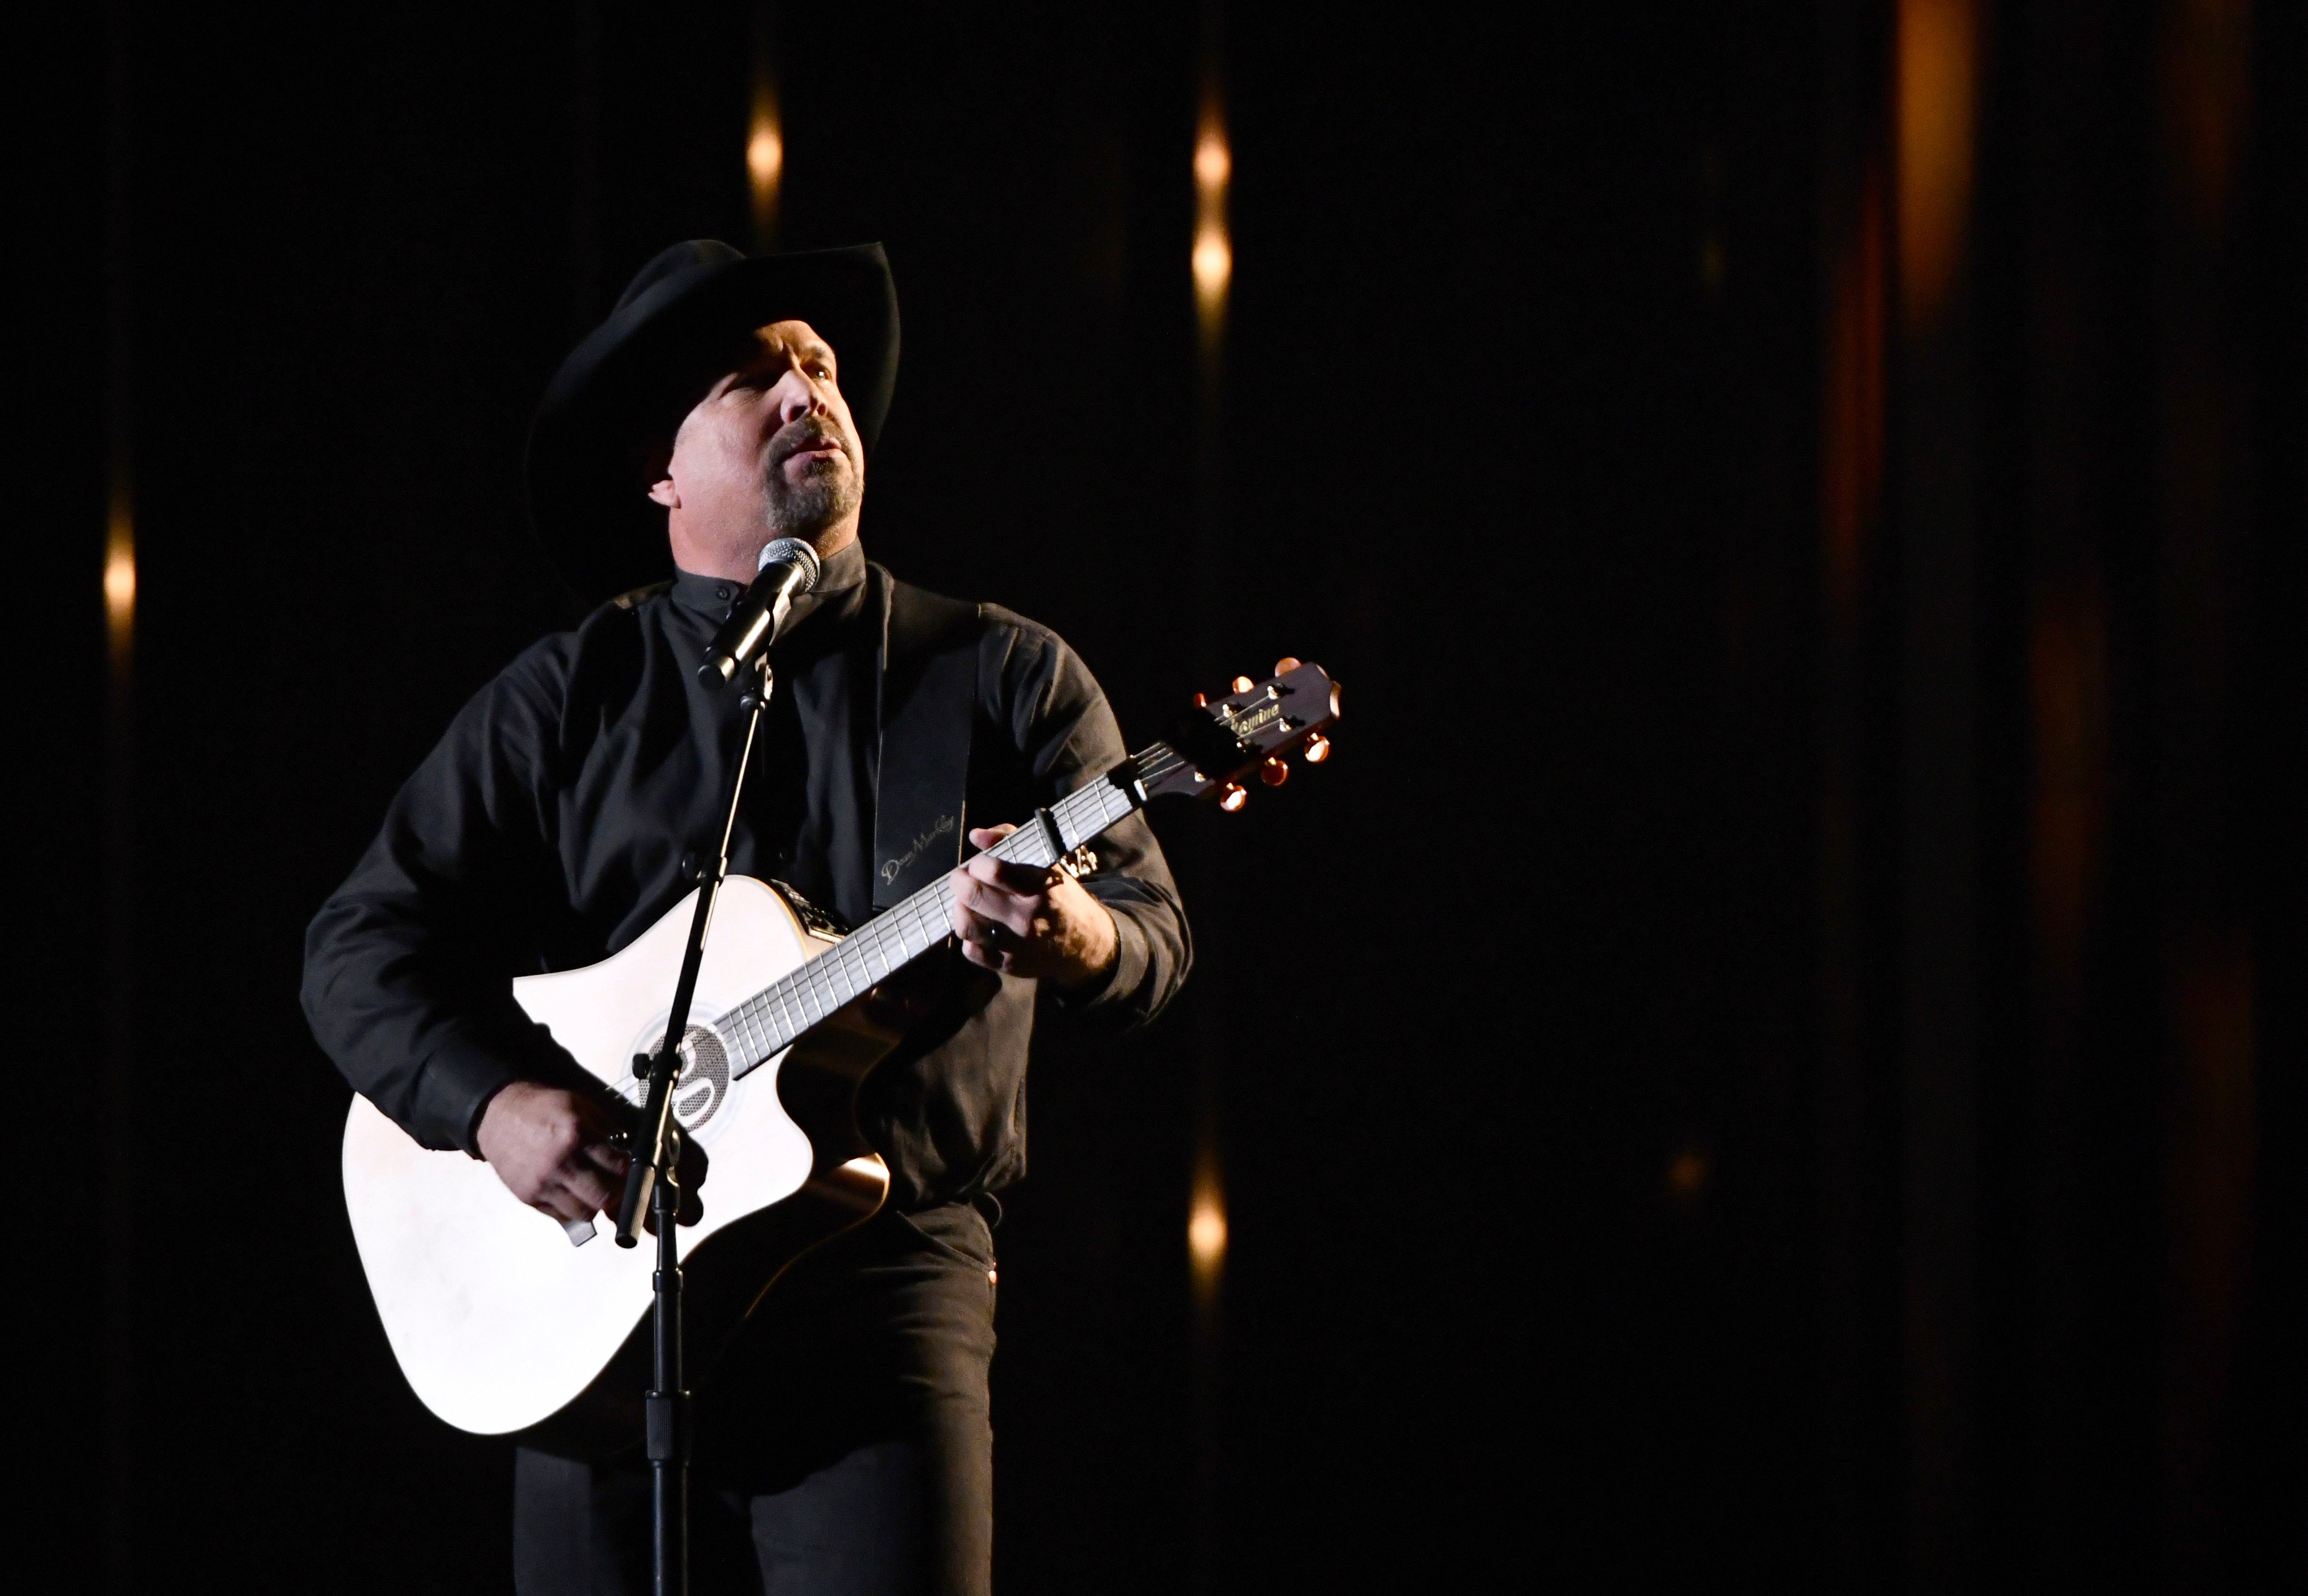 """Let the music unite us with love in their enduring memory,"" Garth Brooks said as a moment of silence honored the"